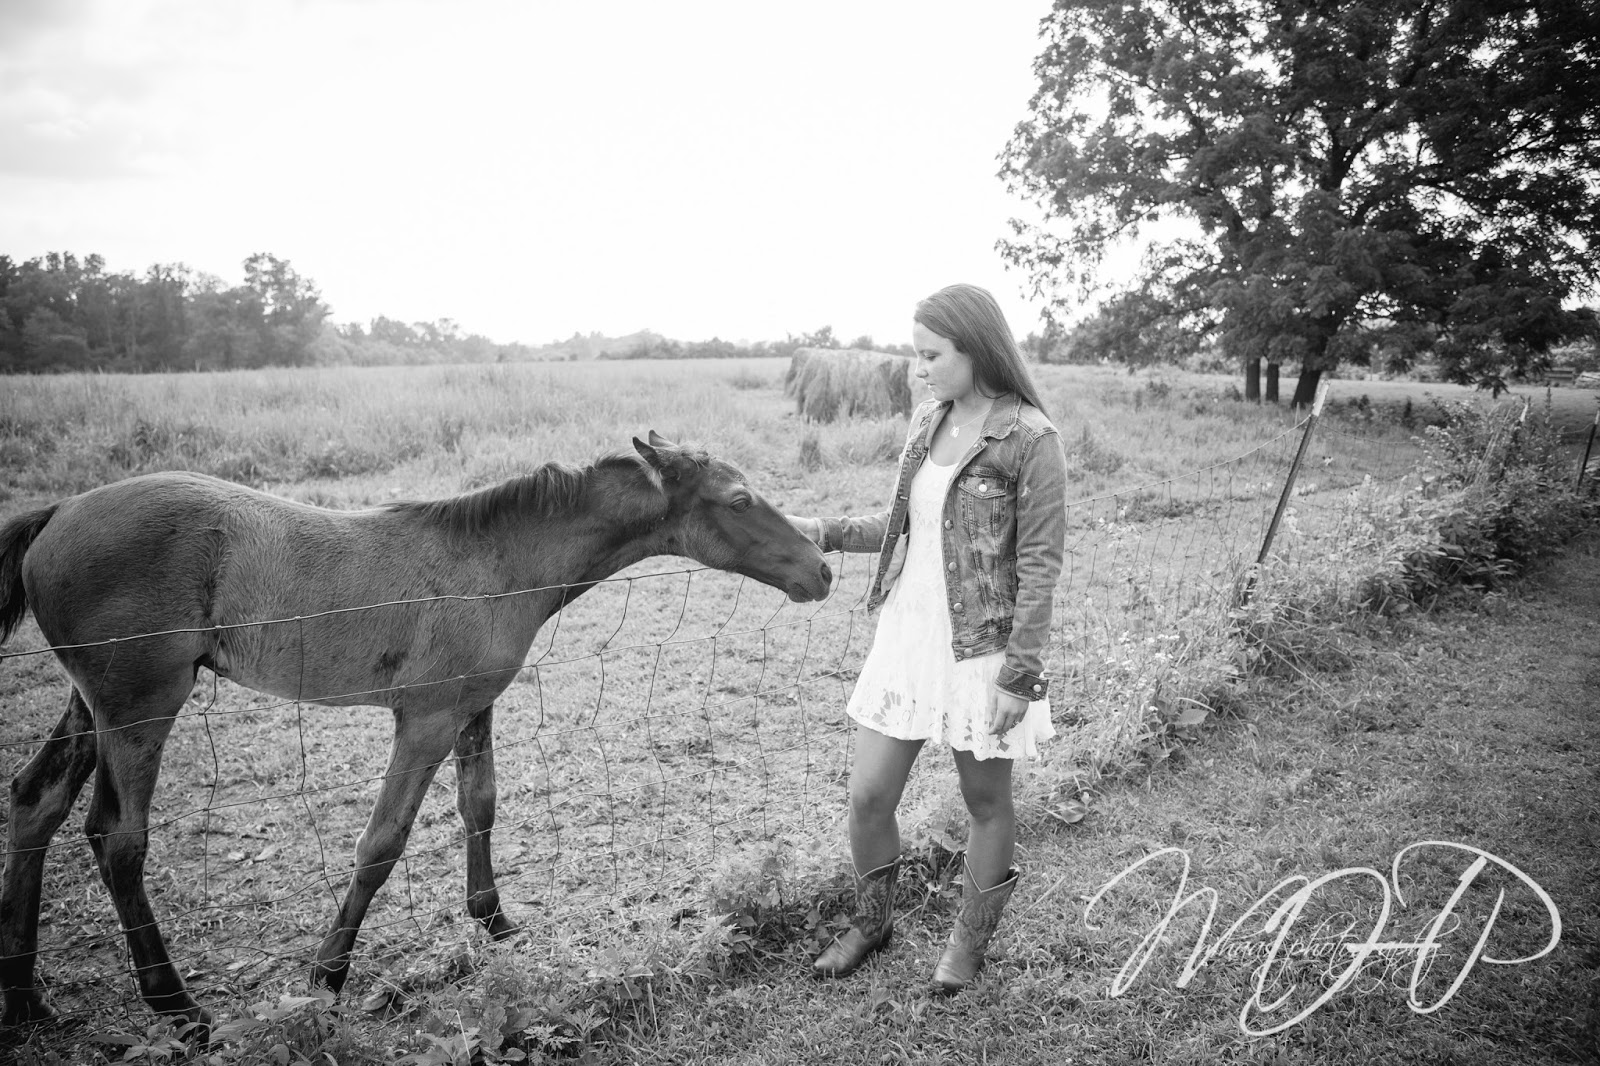 ©2015 MHaas Photography, senior portrait photographer, high school, senior pictures, louisville senior portrait photographer, horse, barn, rustic, cheerleader, Blackacre, farm, class of 2016, Assumption High School